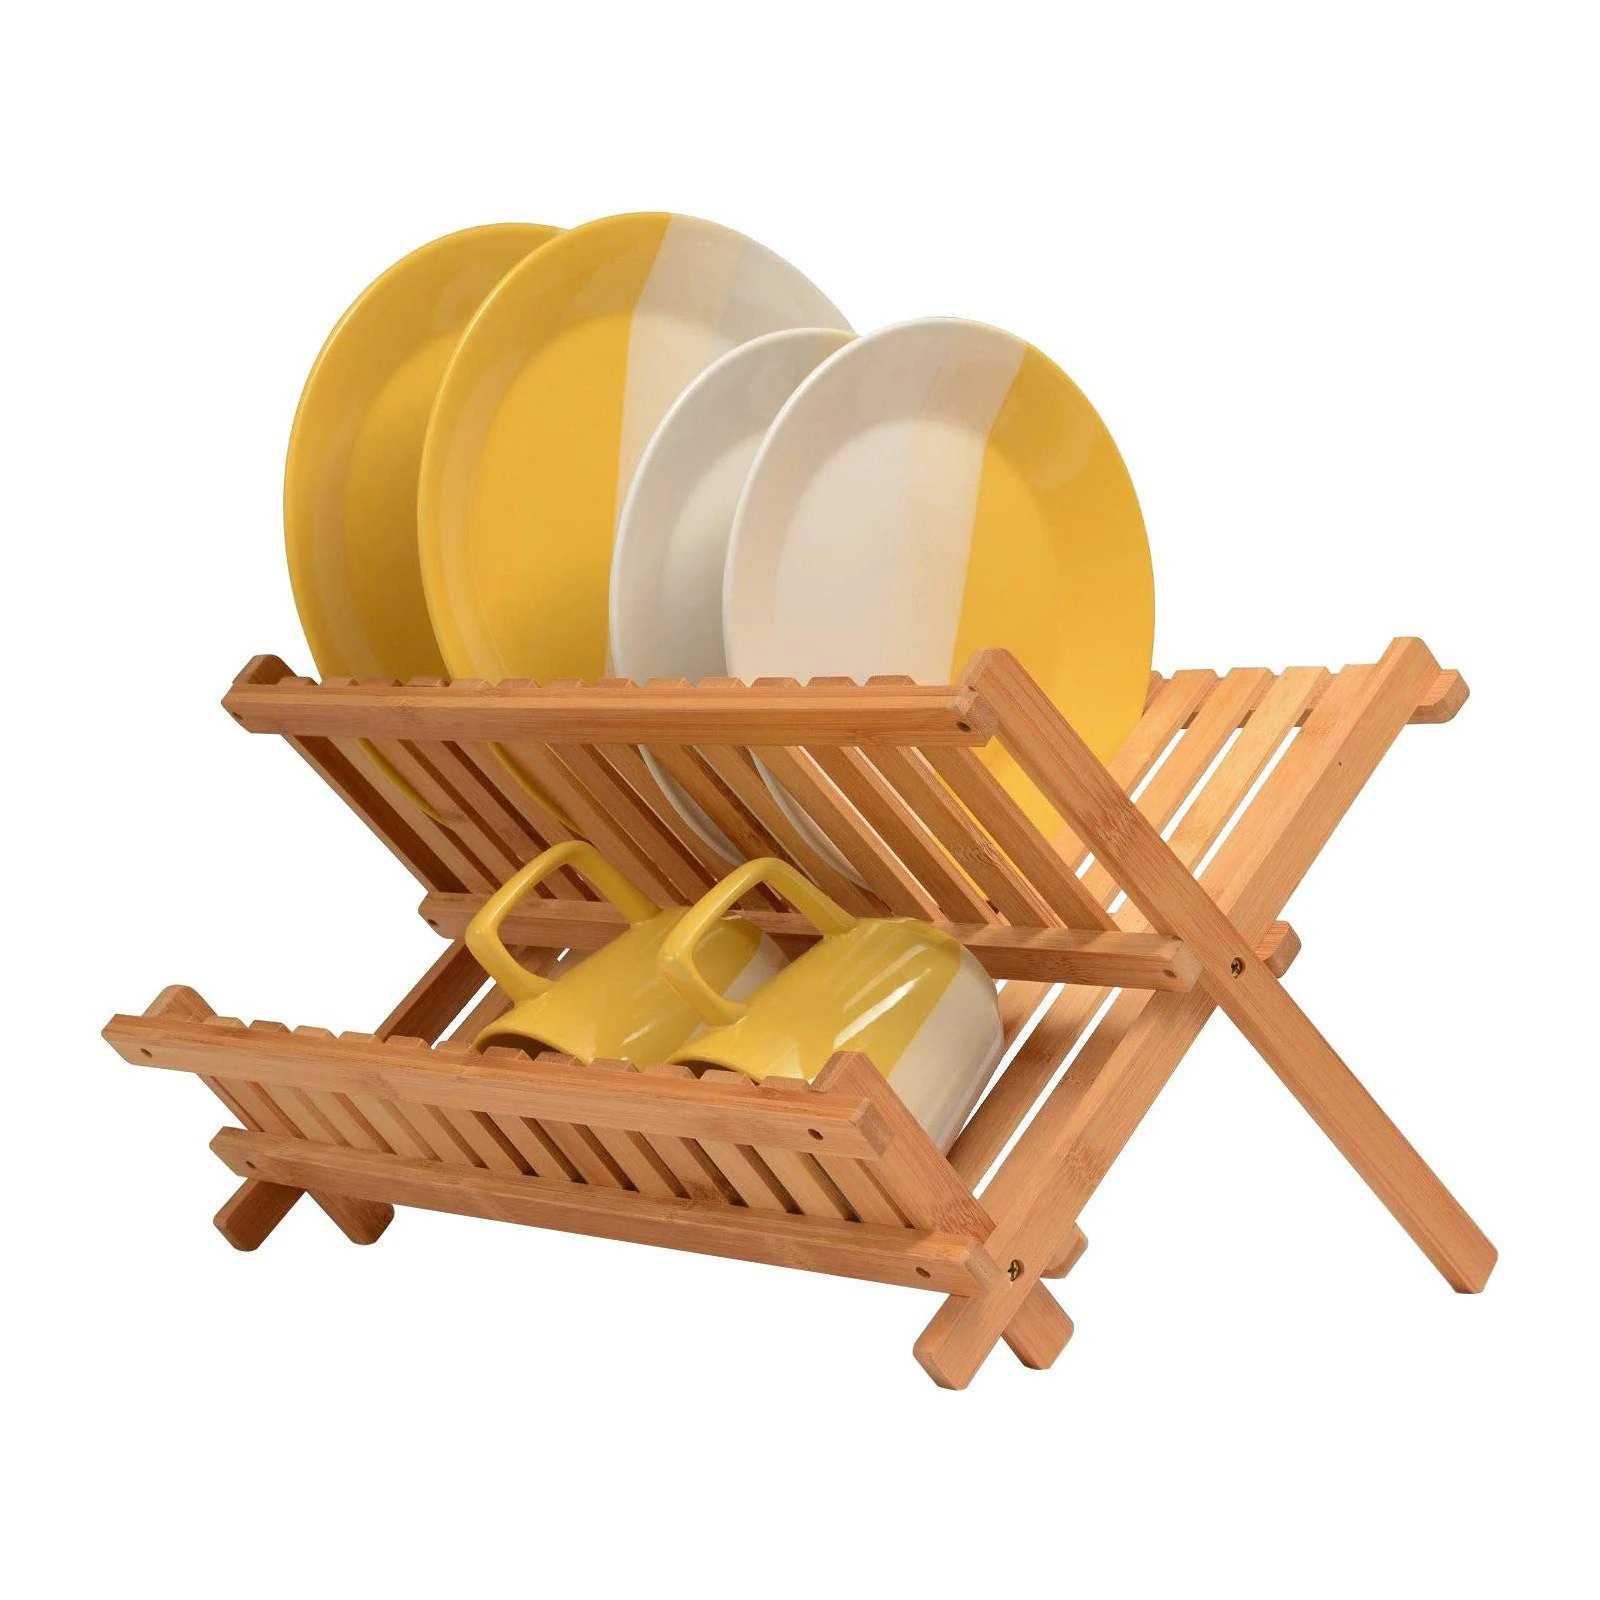 How to Clean and Get Rid of Mould of Your Bamboo Dish Drainer